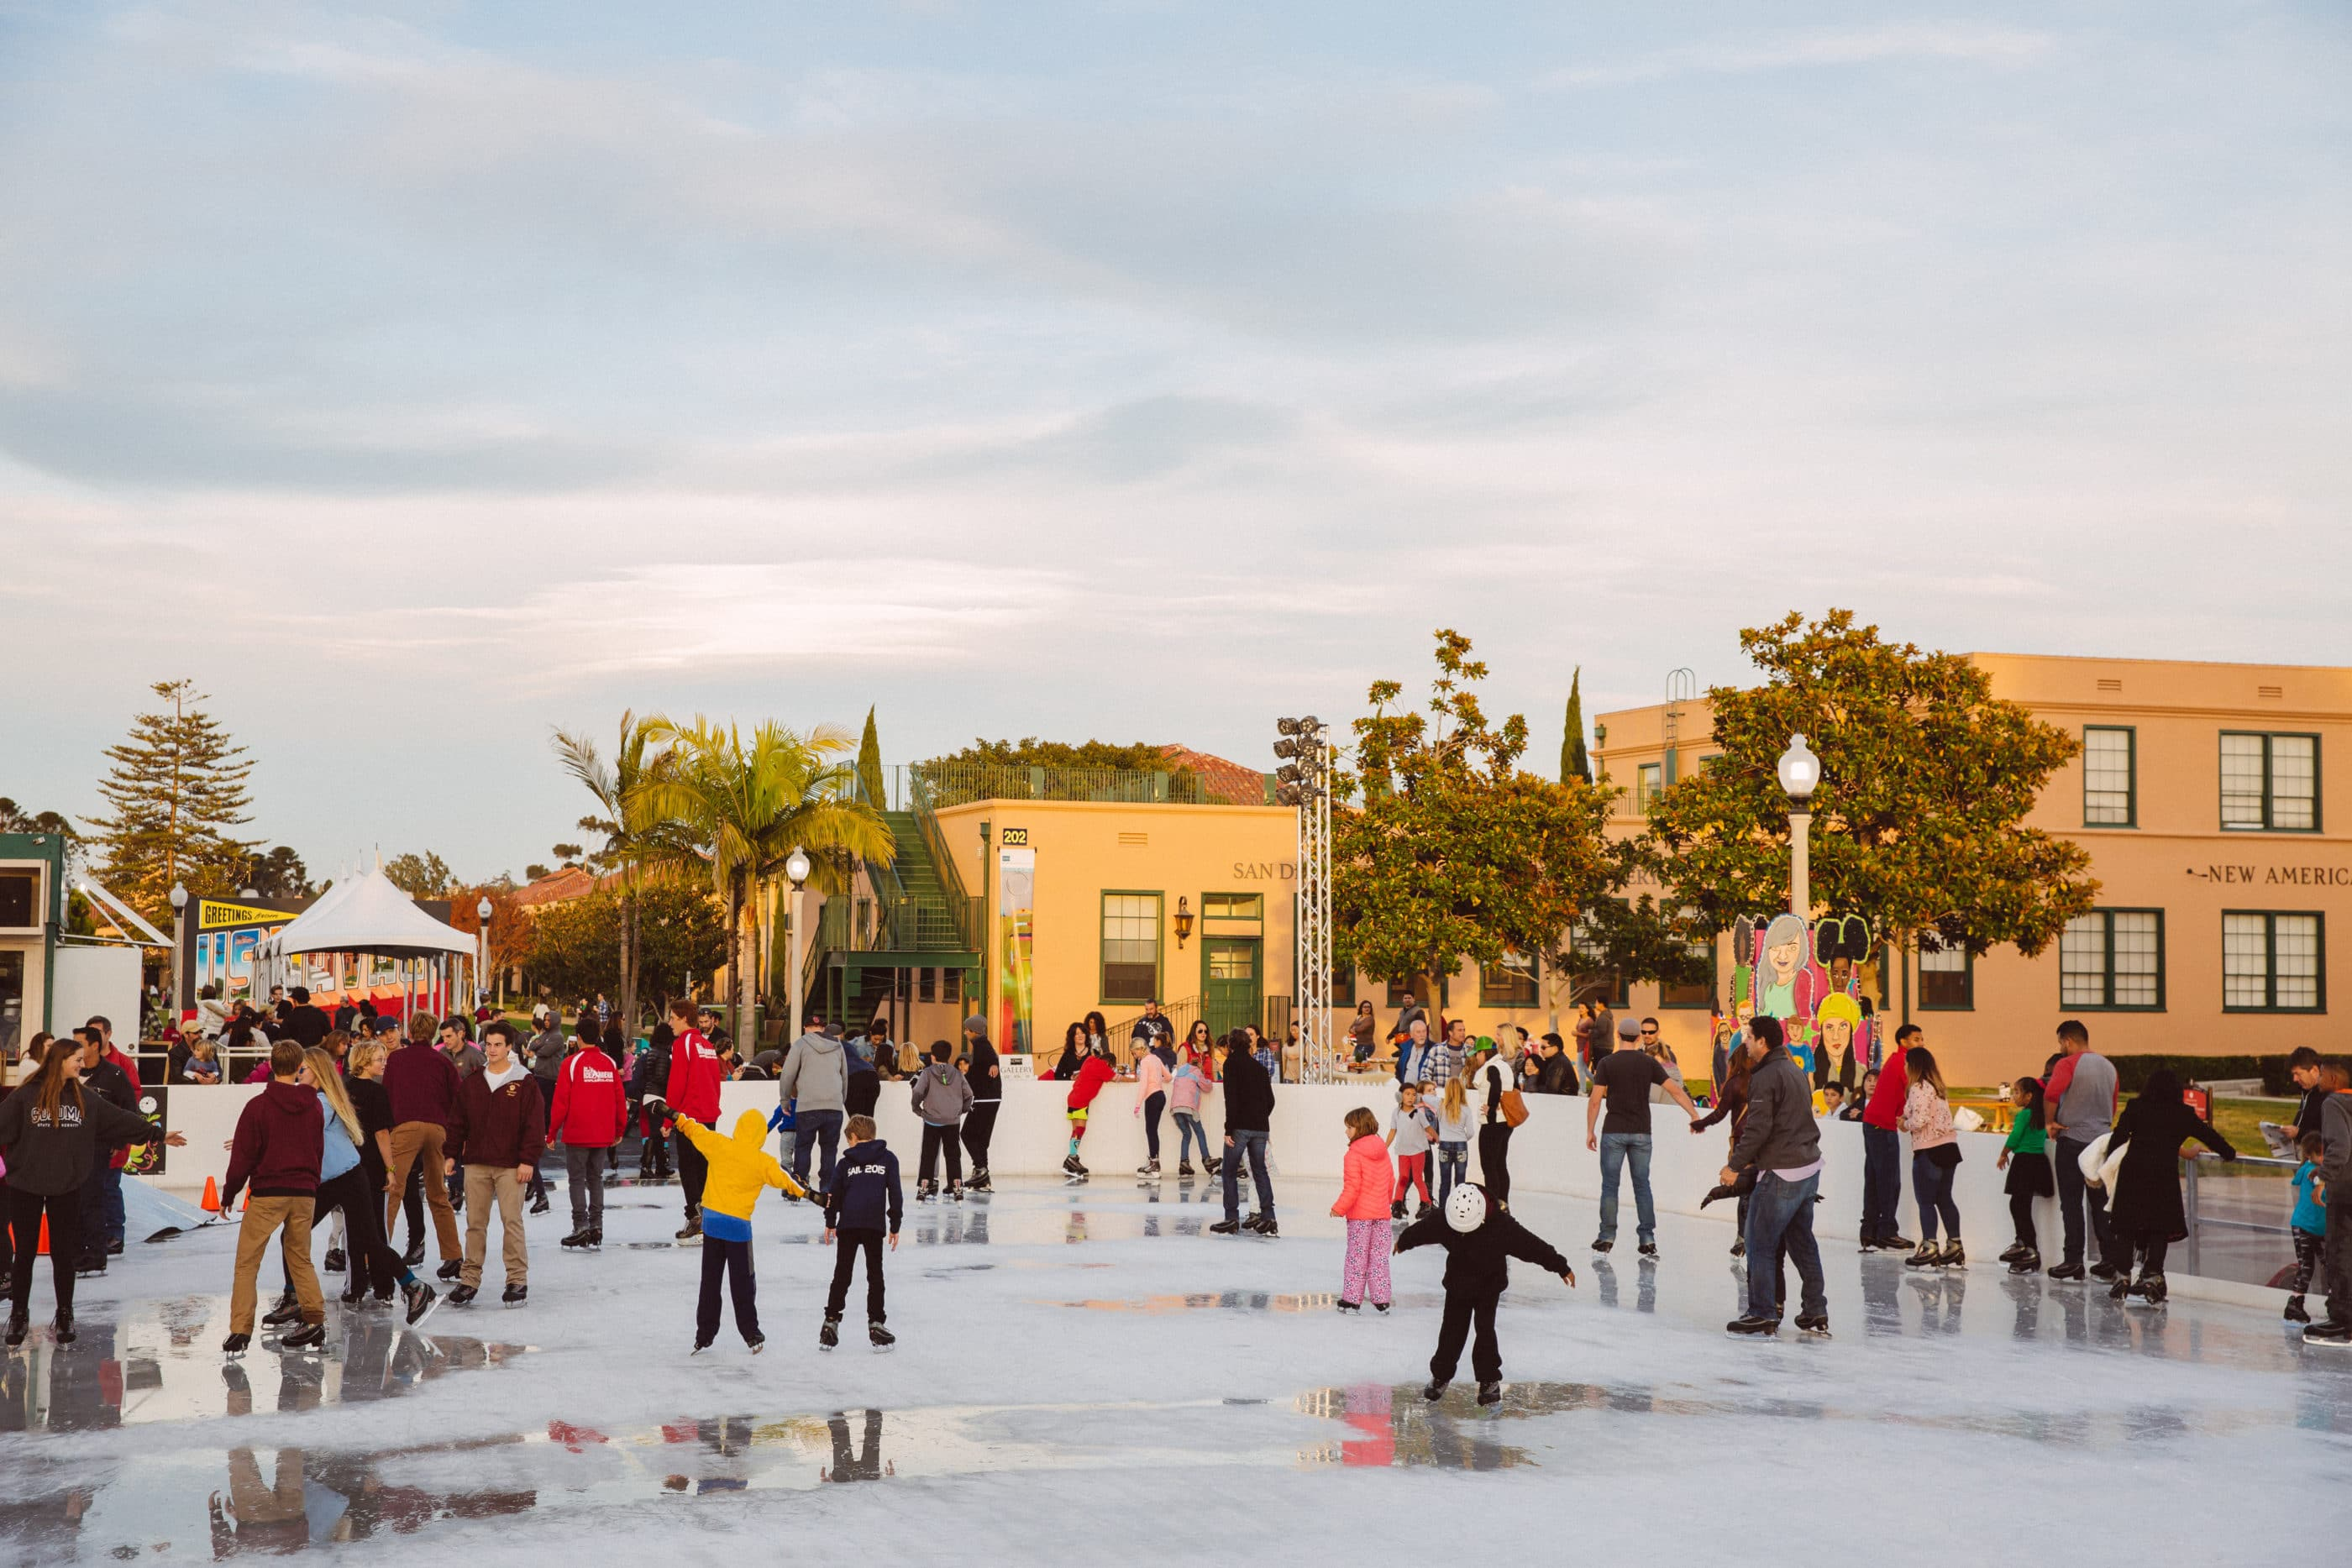 People ice skating at Liberty Station on a sunny day.